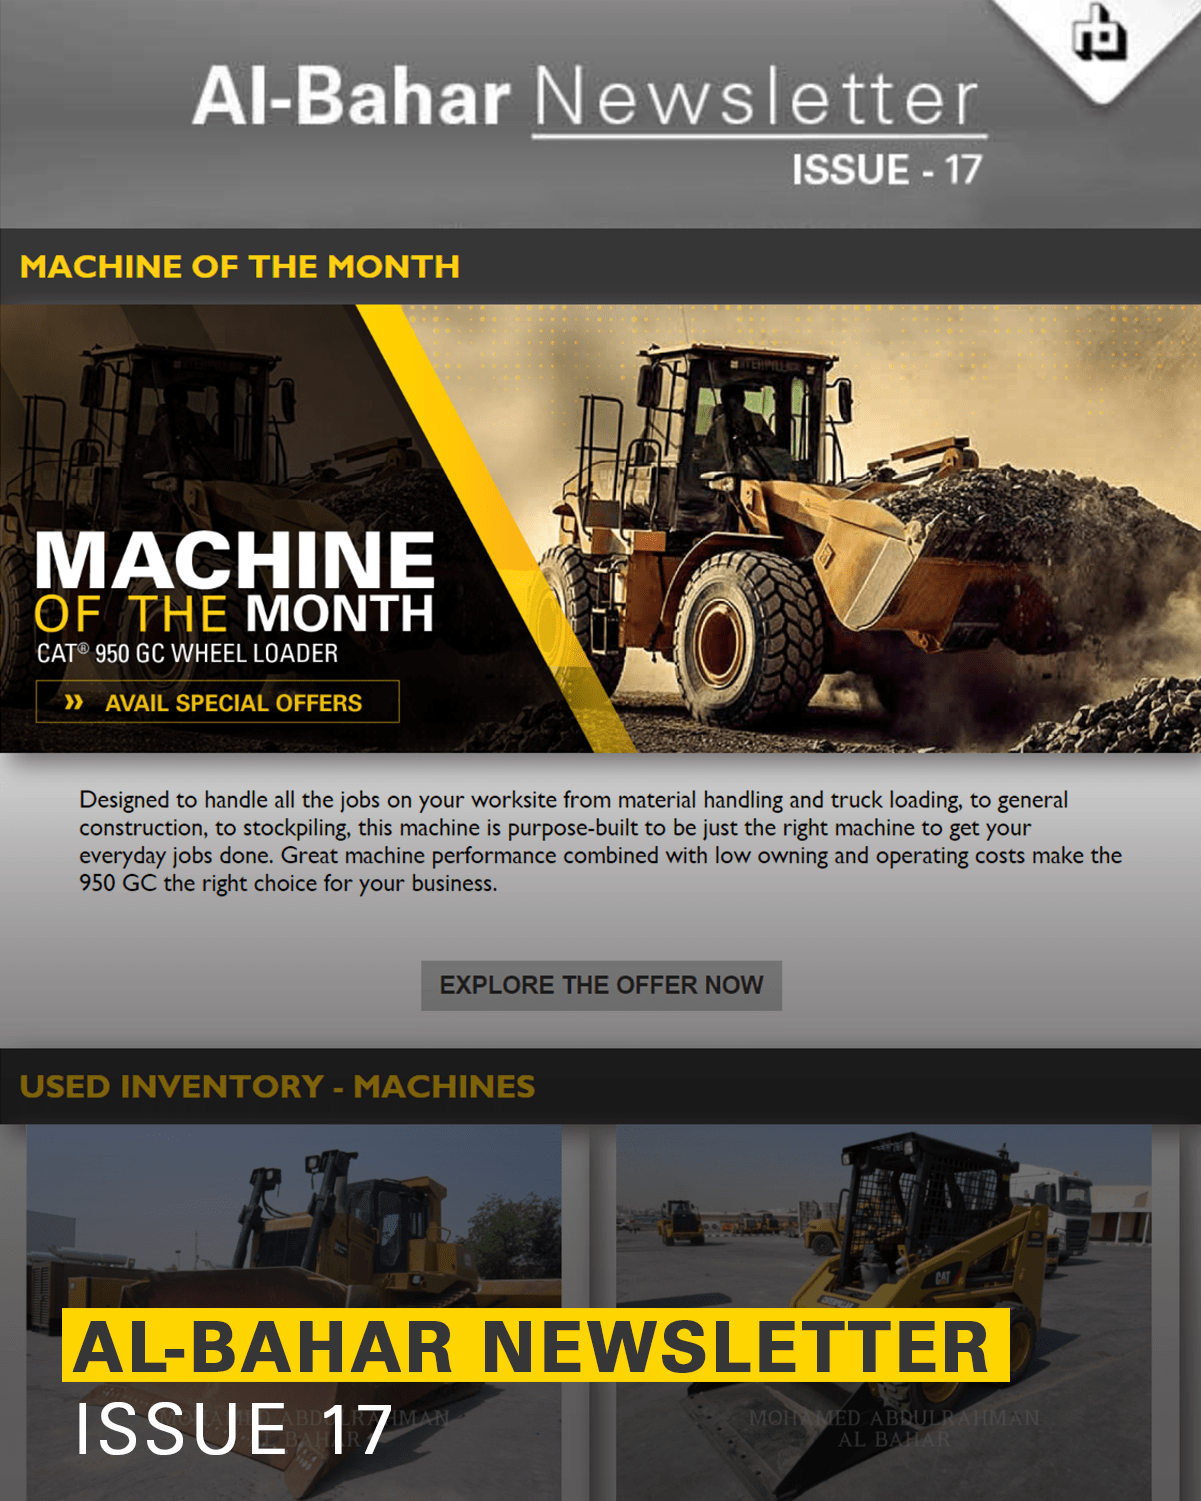 al-bahar-2018-newsletter-issue-17